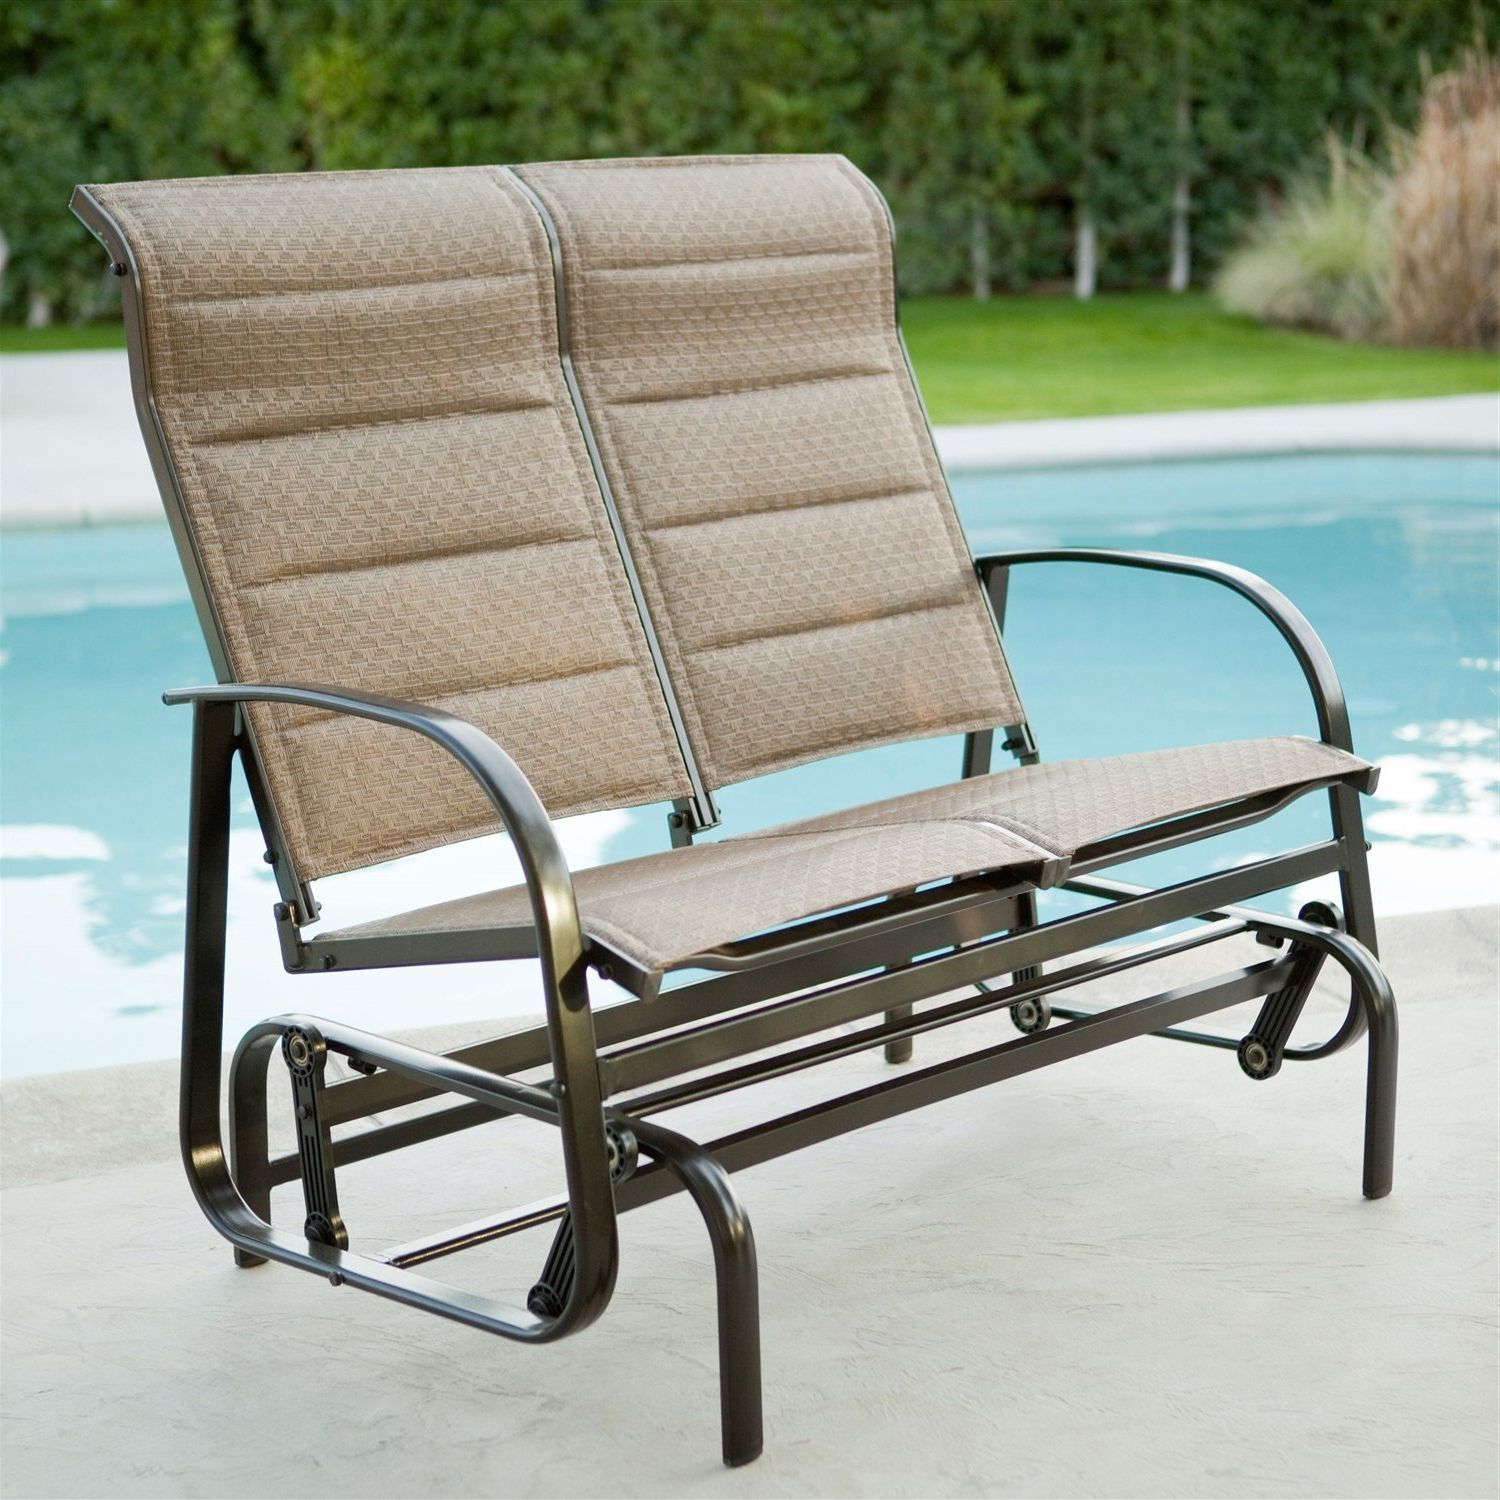 Popular Padded Sling Loveseats With Cushions Pertaining To Weatherproof Outdoor Loveseat Glider Chair With Padded Sling (View 2 of 30)